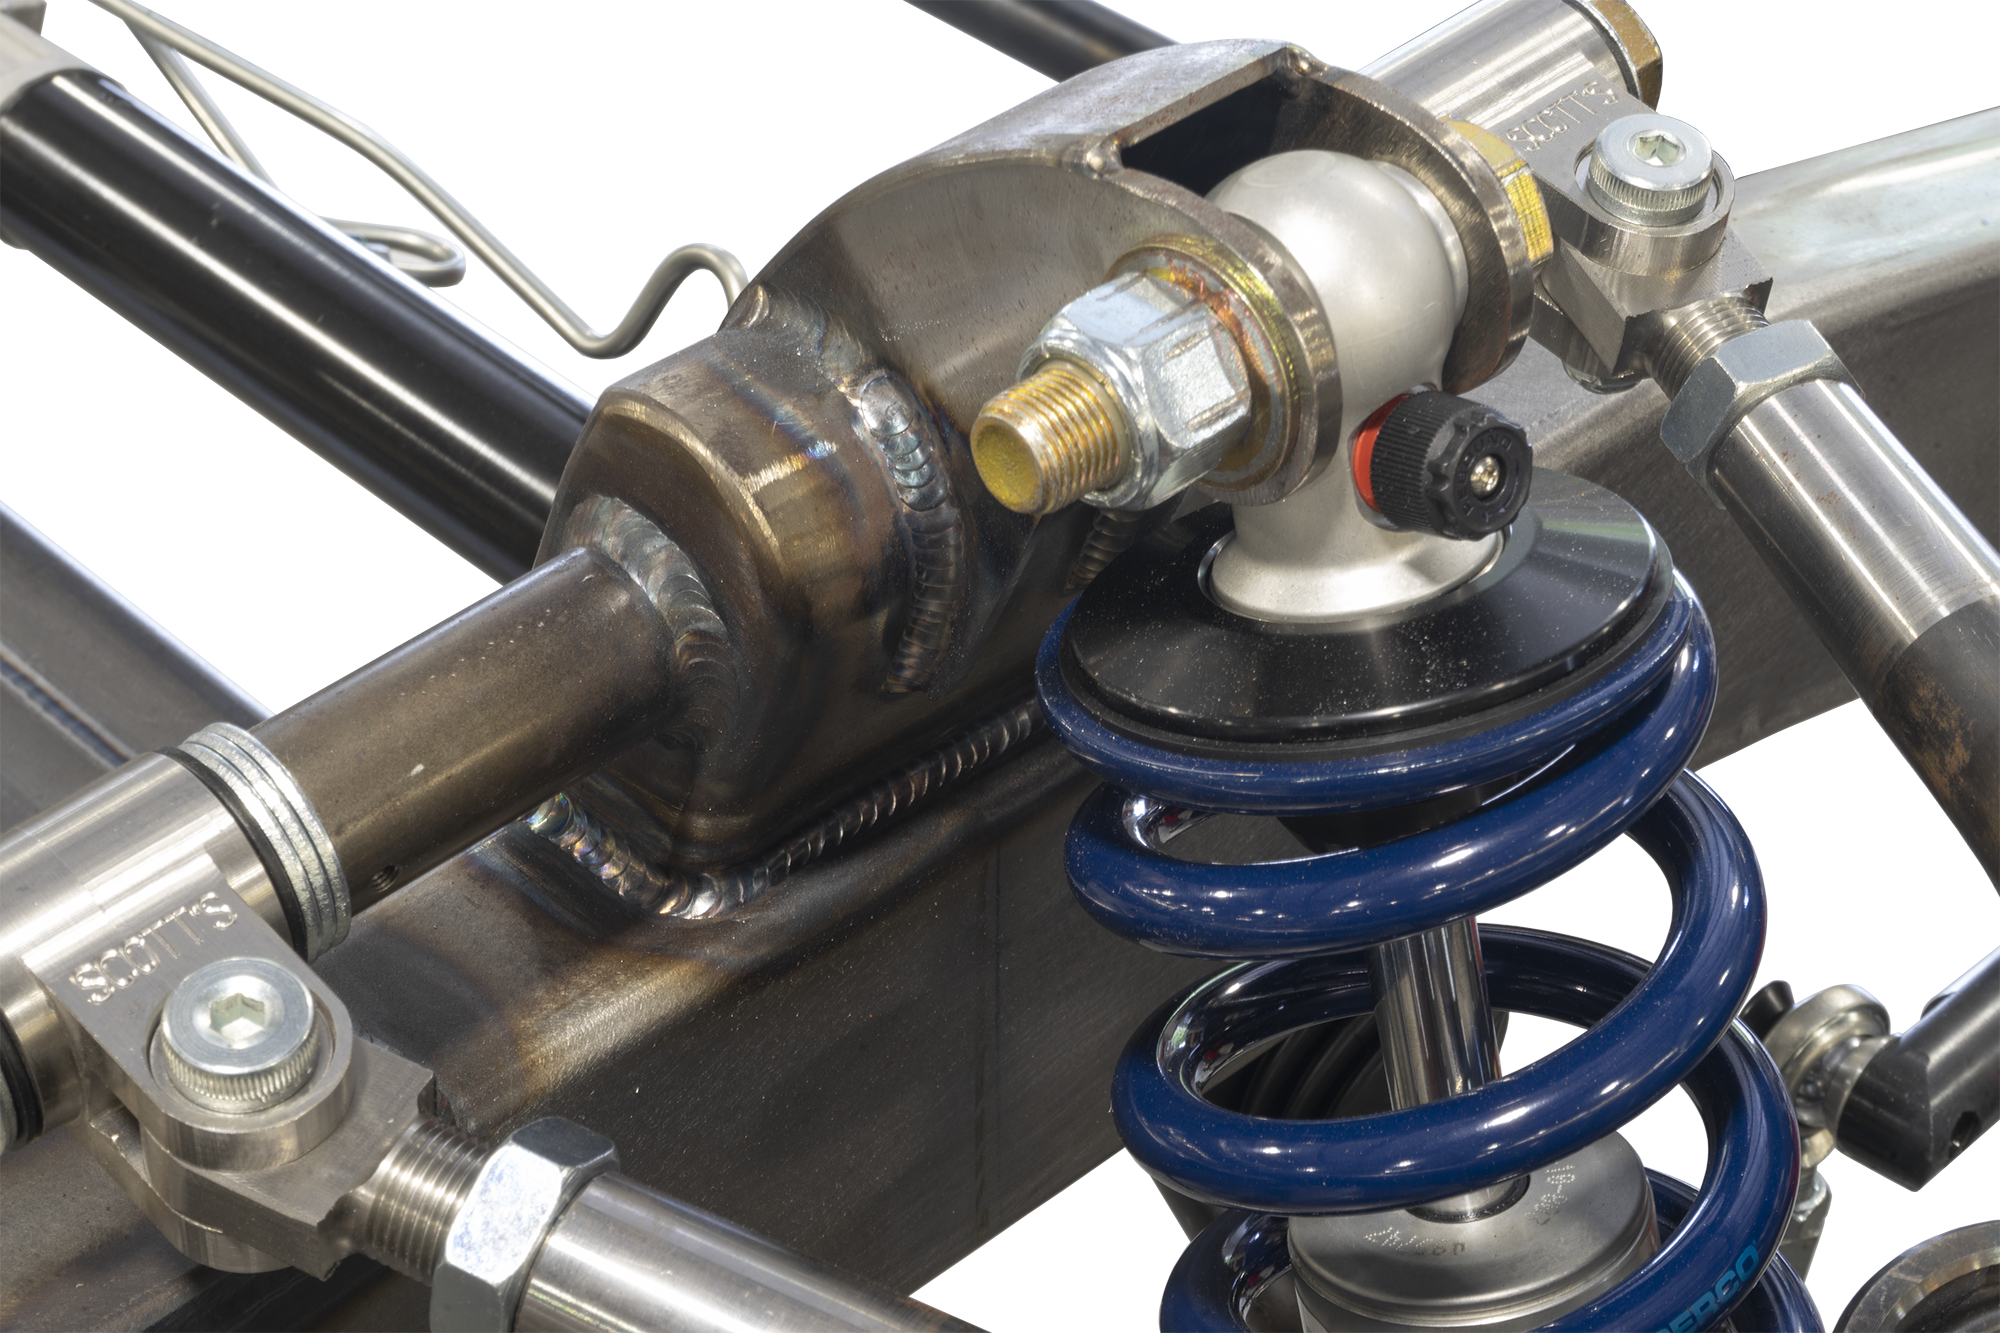 scotts-hotrods-48-52-F1-mandrel-coilover-chassis-4-web